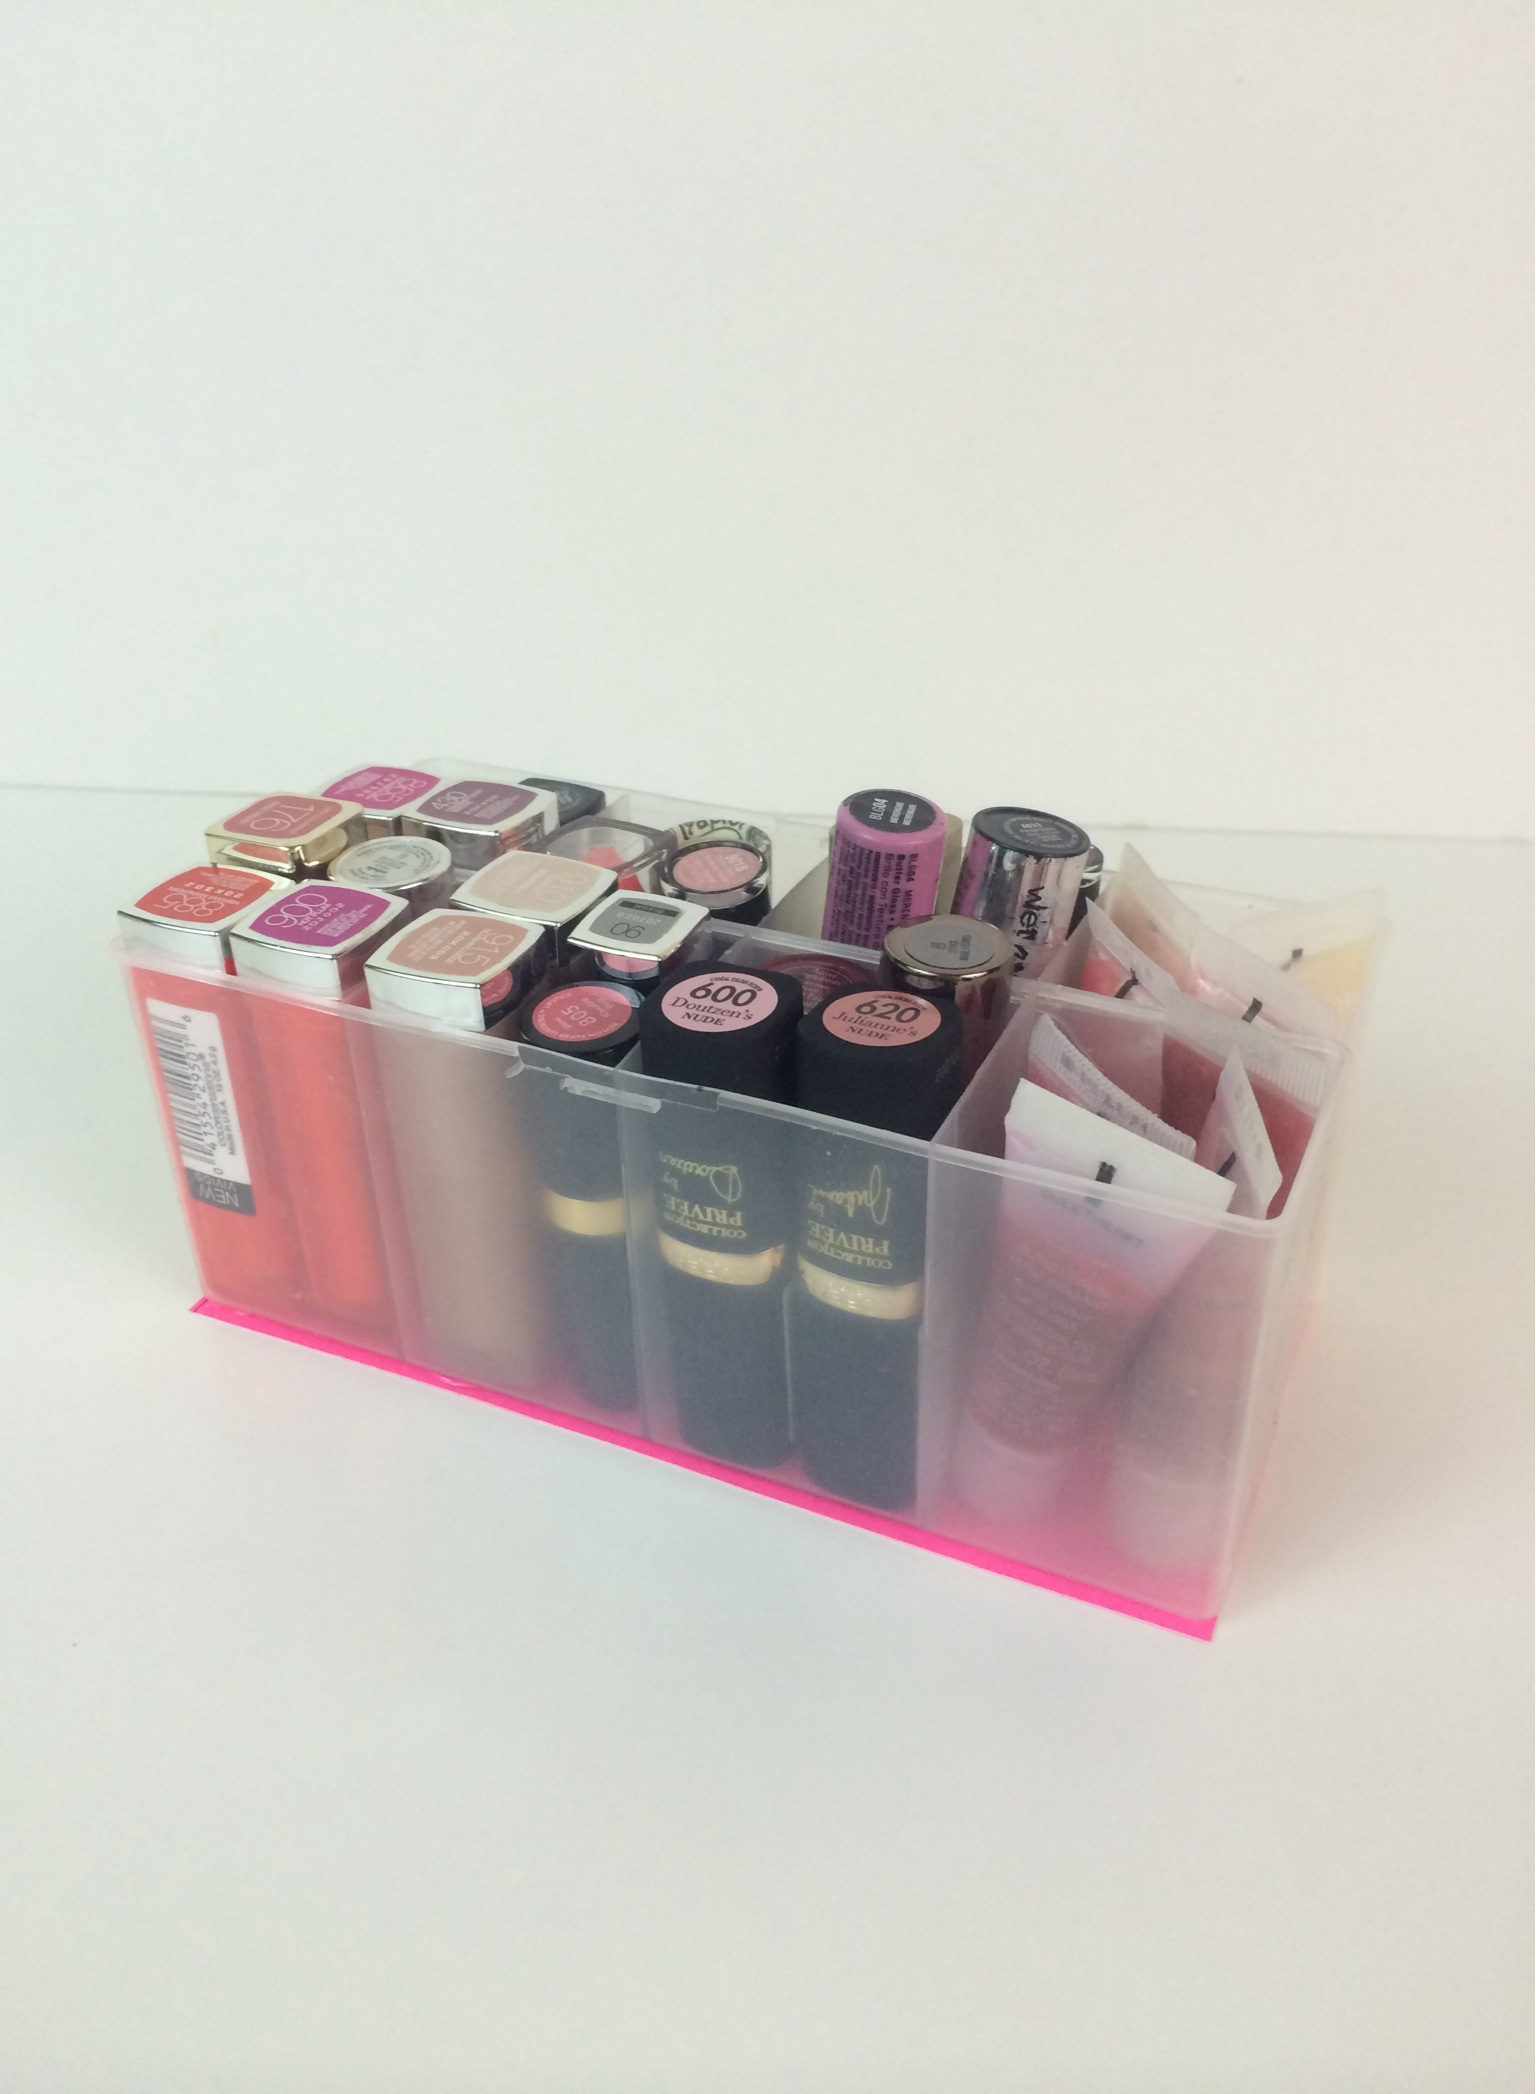 Diy lipstick holder and organizer lipstickholderdiyeg solutioingenieria Gallery